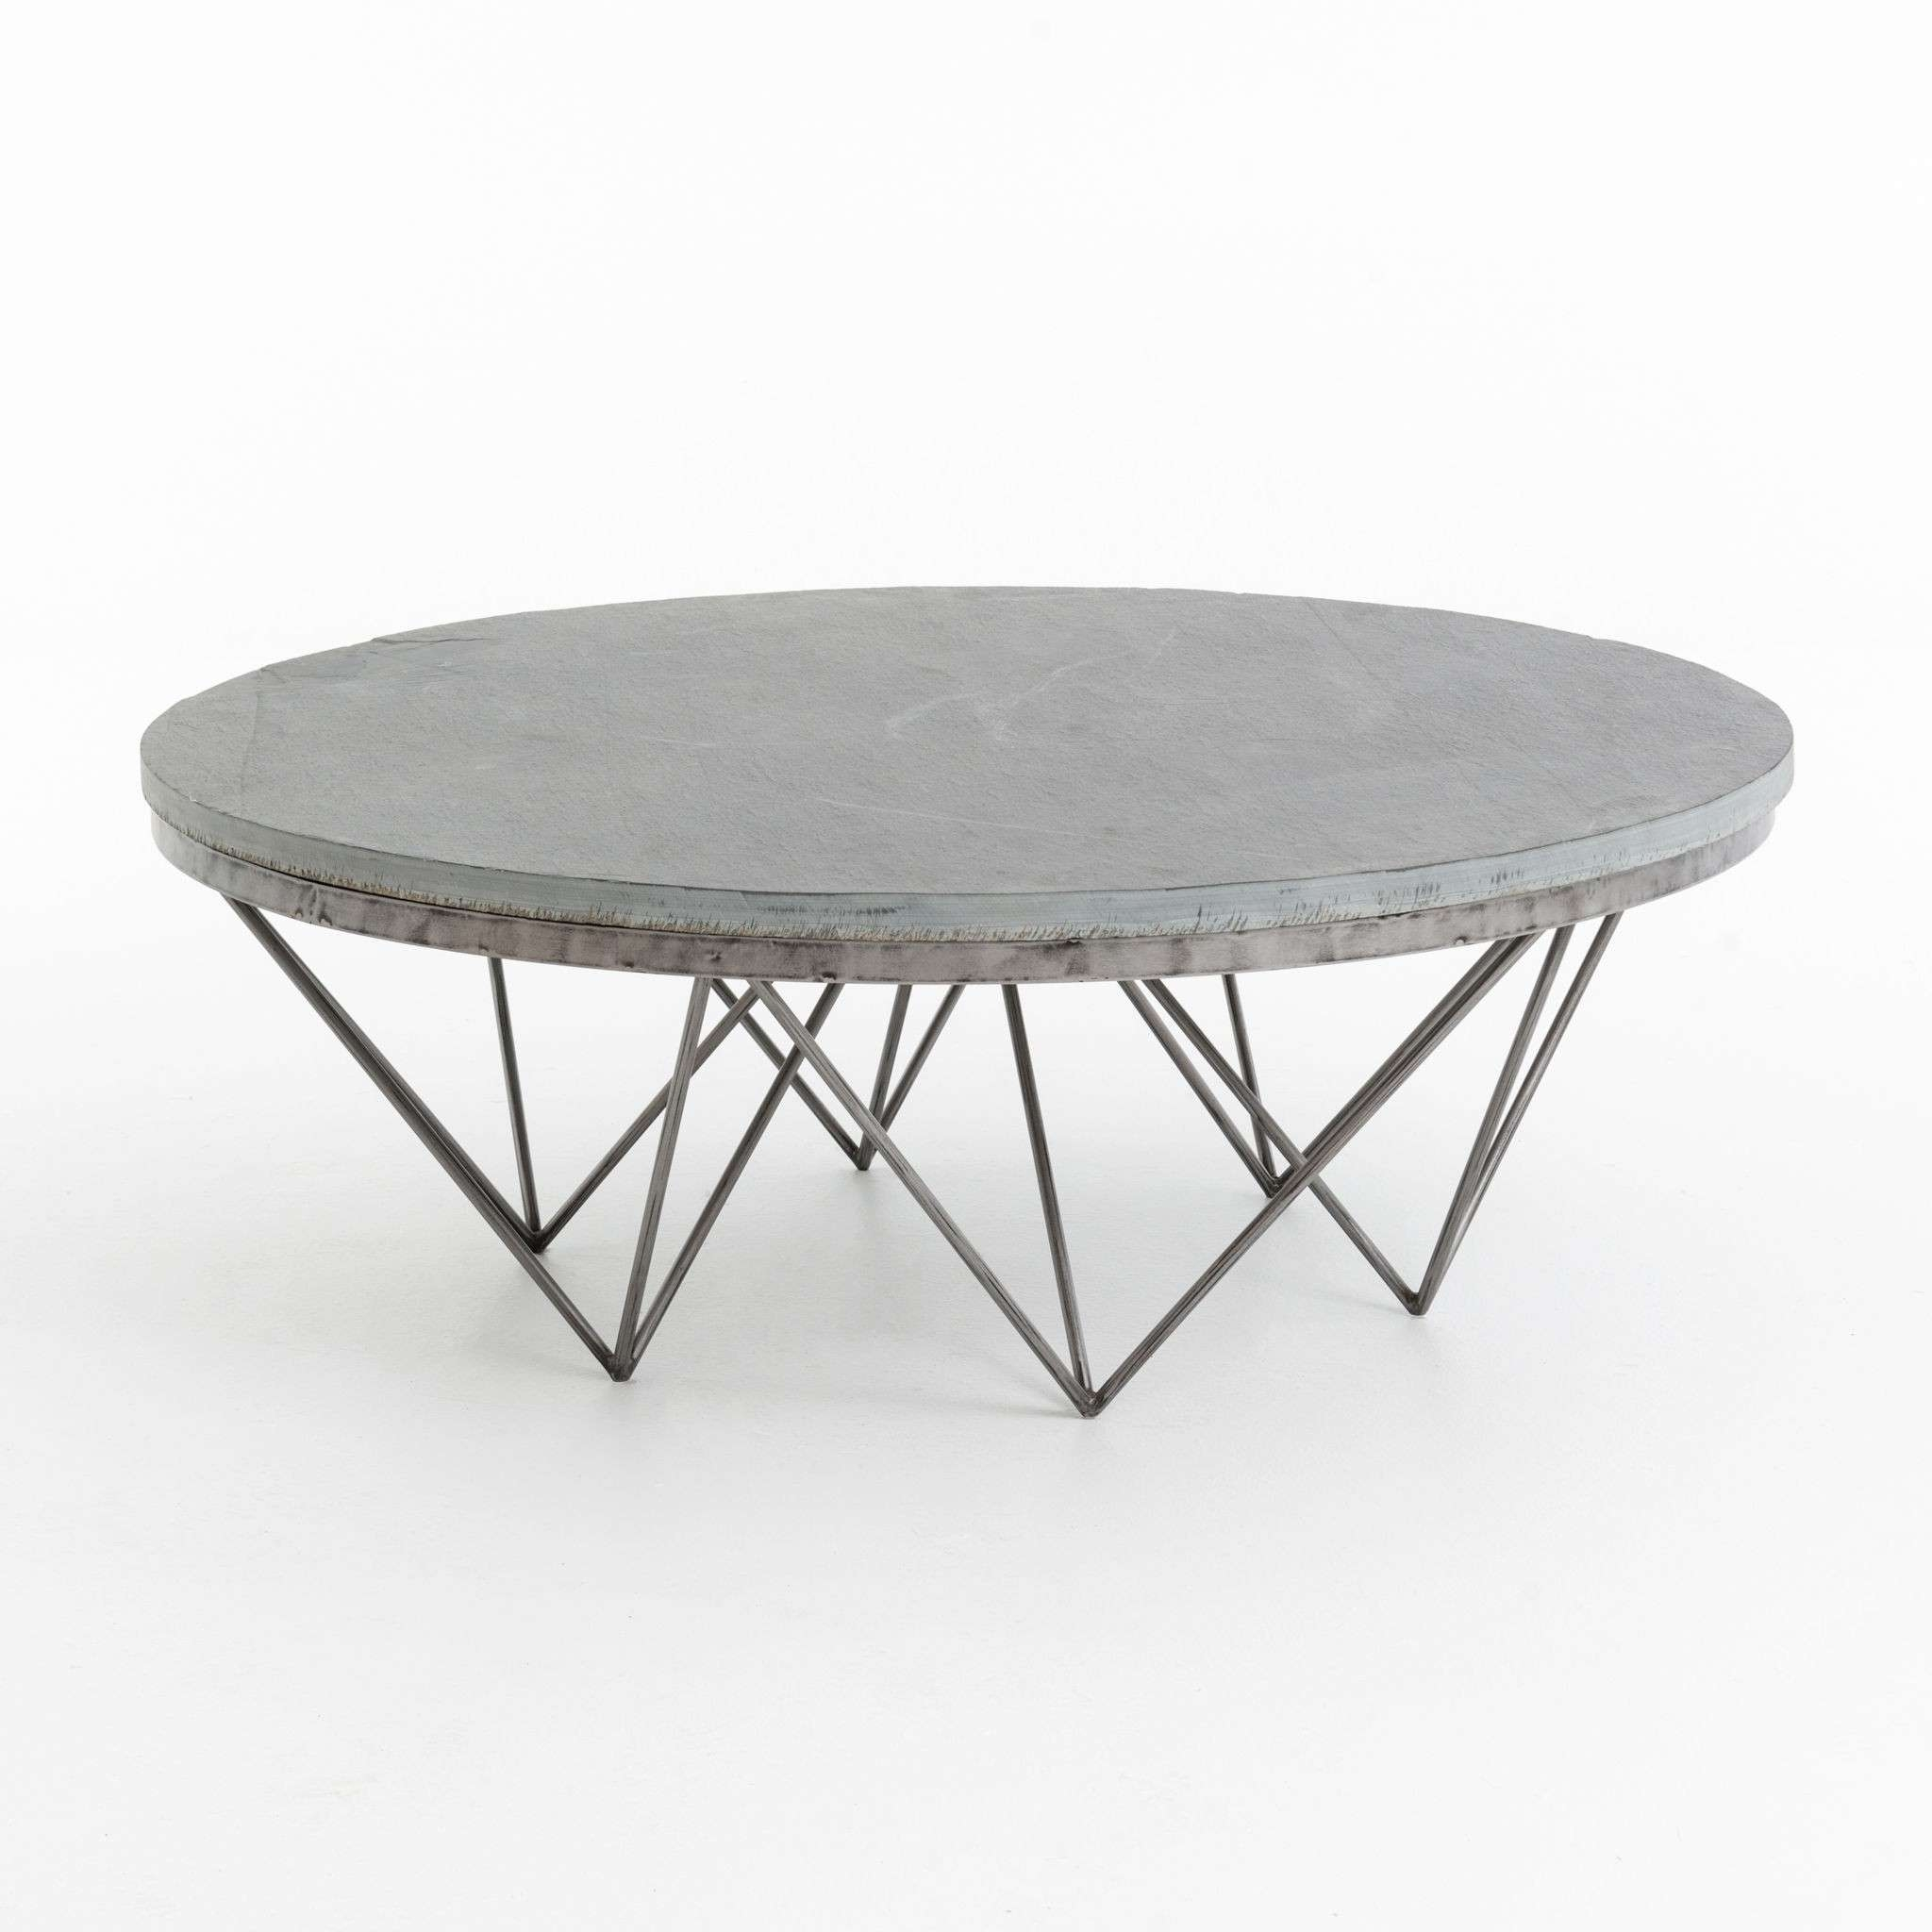 Well Known Round Steel Coffee Tables Throughout Coffee Tables : Metal Frame Coffee Table Black Square Glass Living (View 19 of 20)